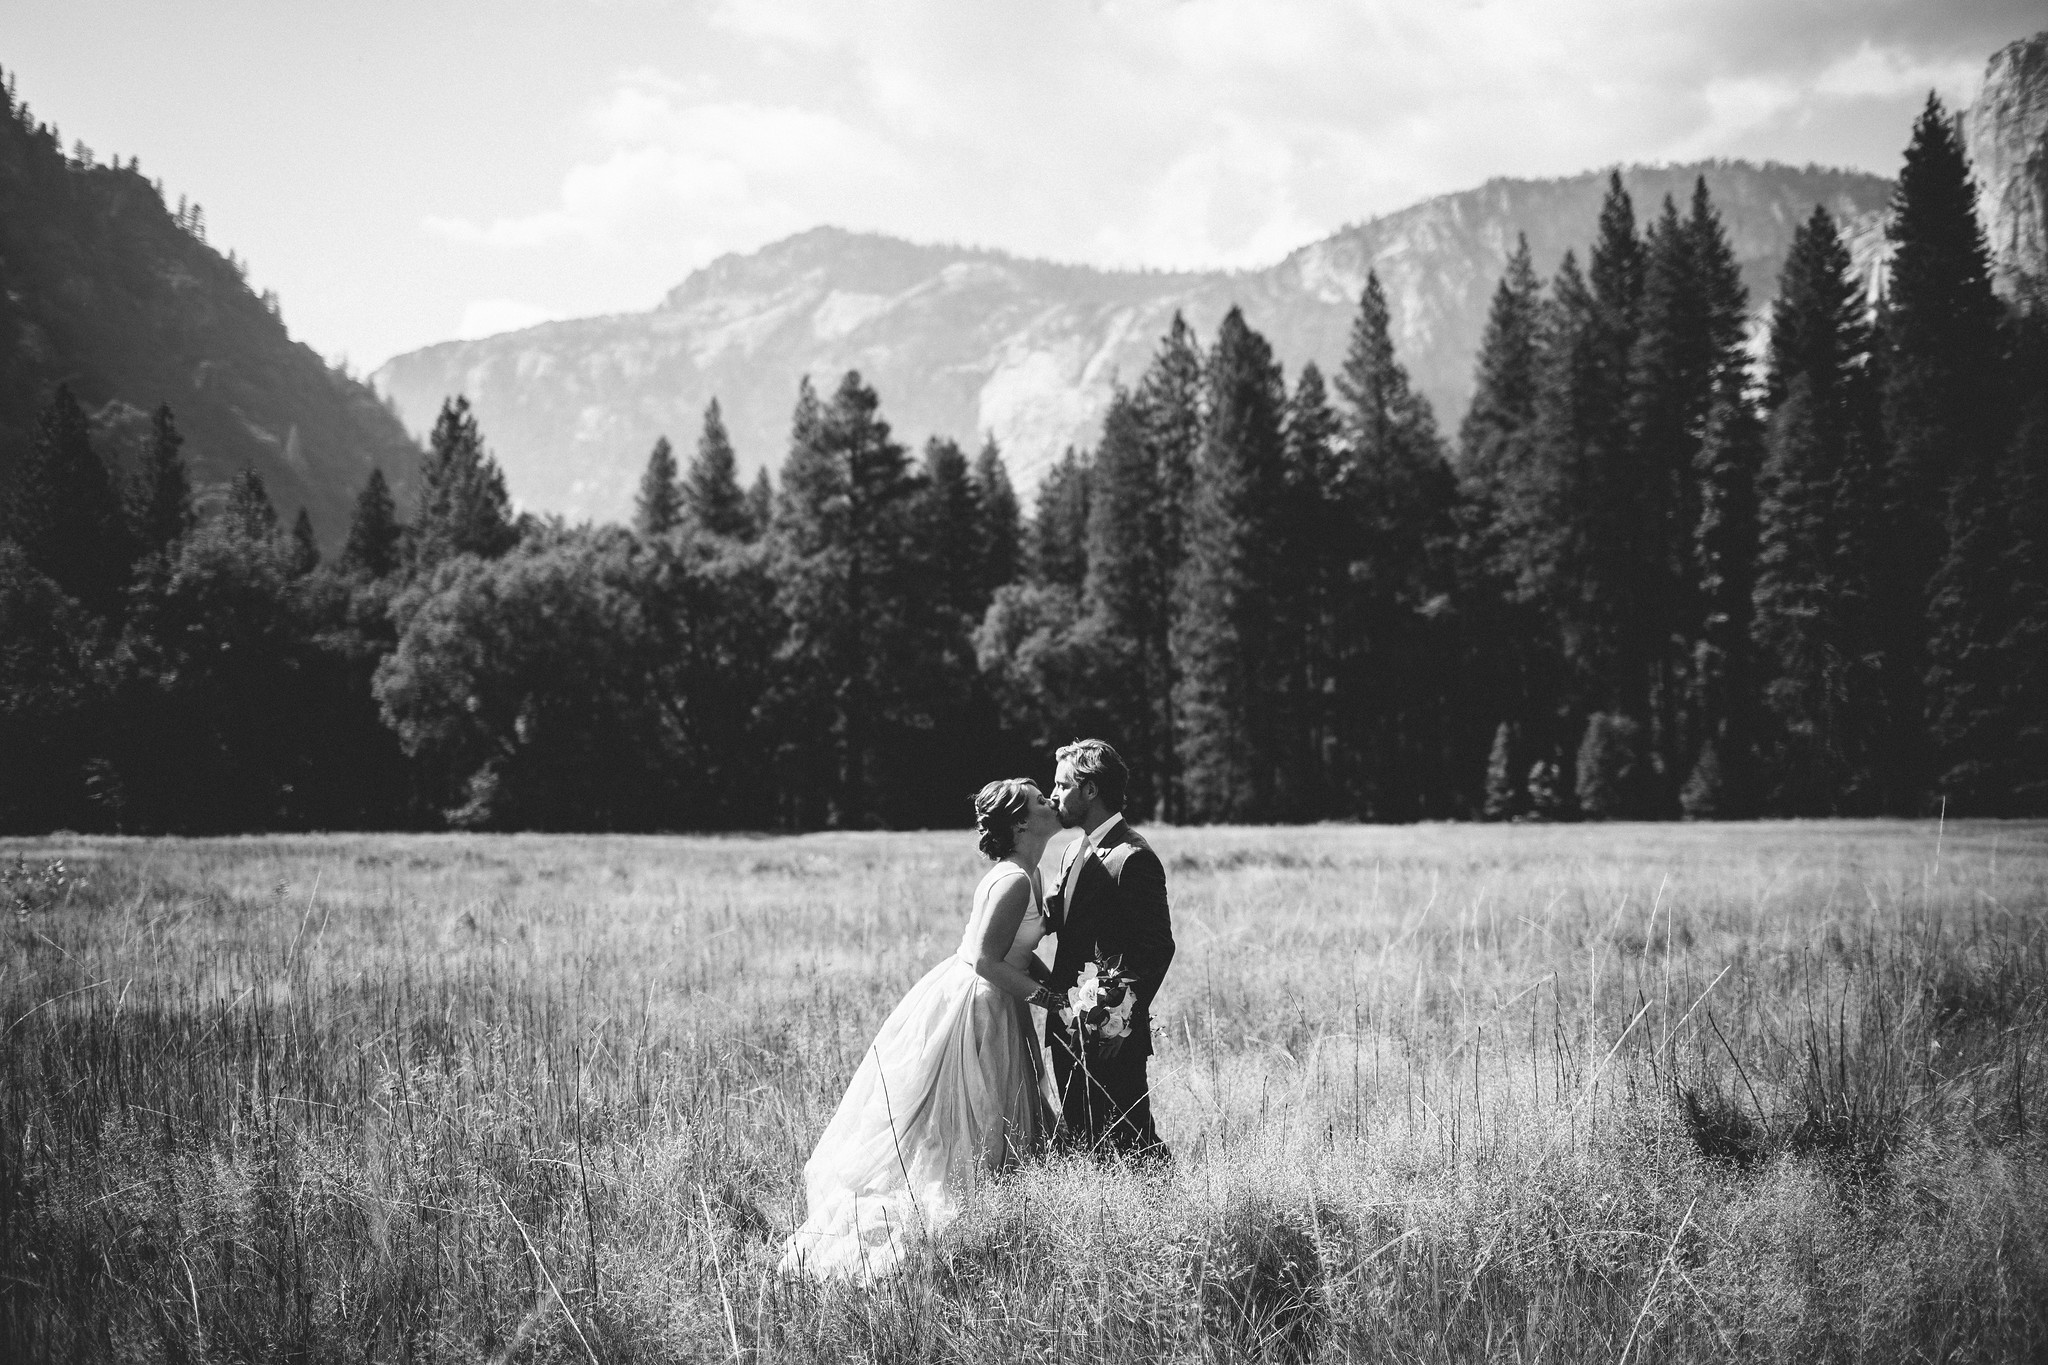 yosemite_elopement_10.jpg